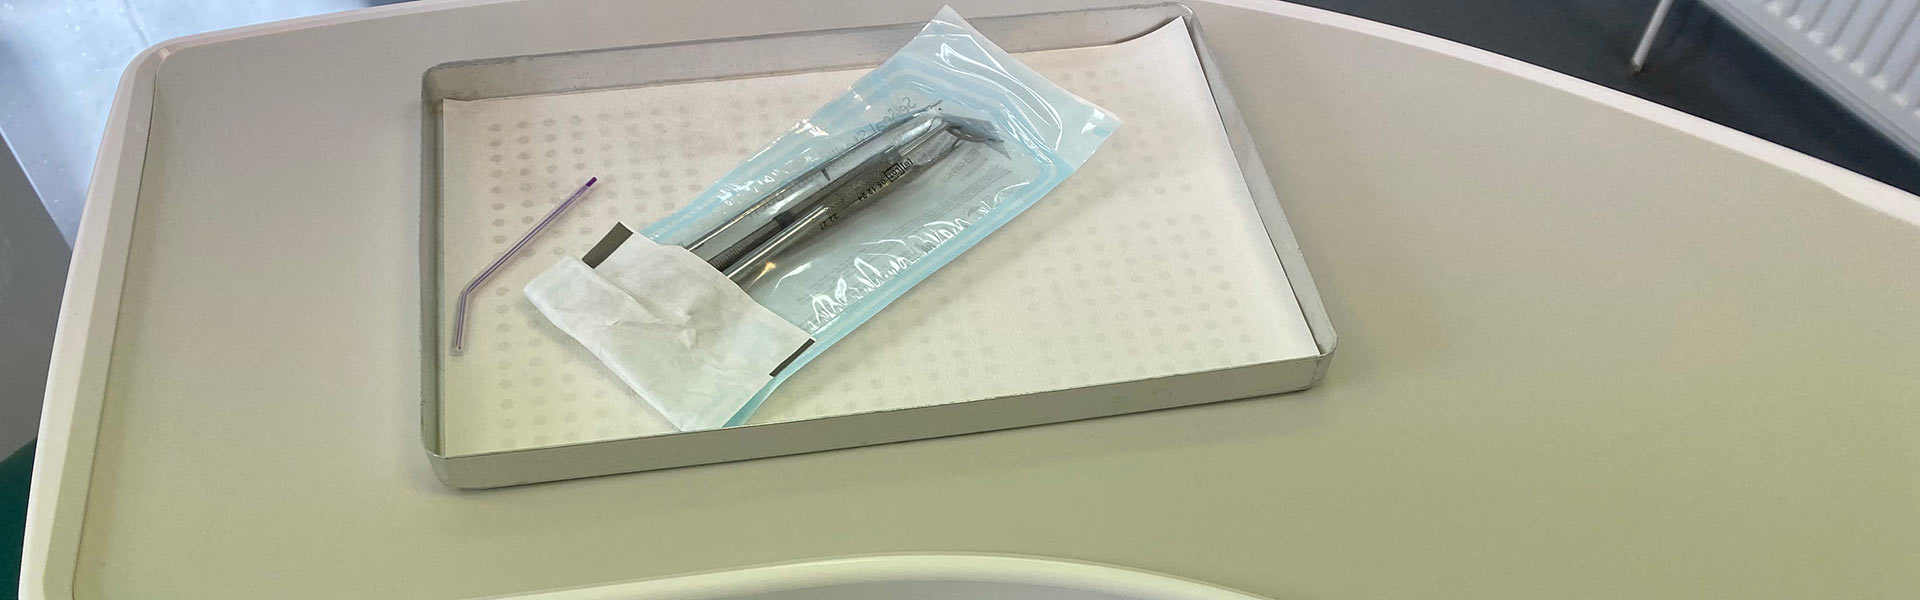 Sealed sterile dental instruments